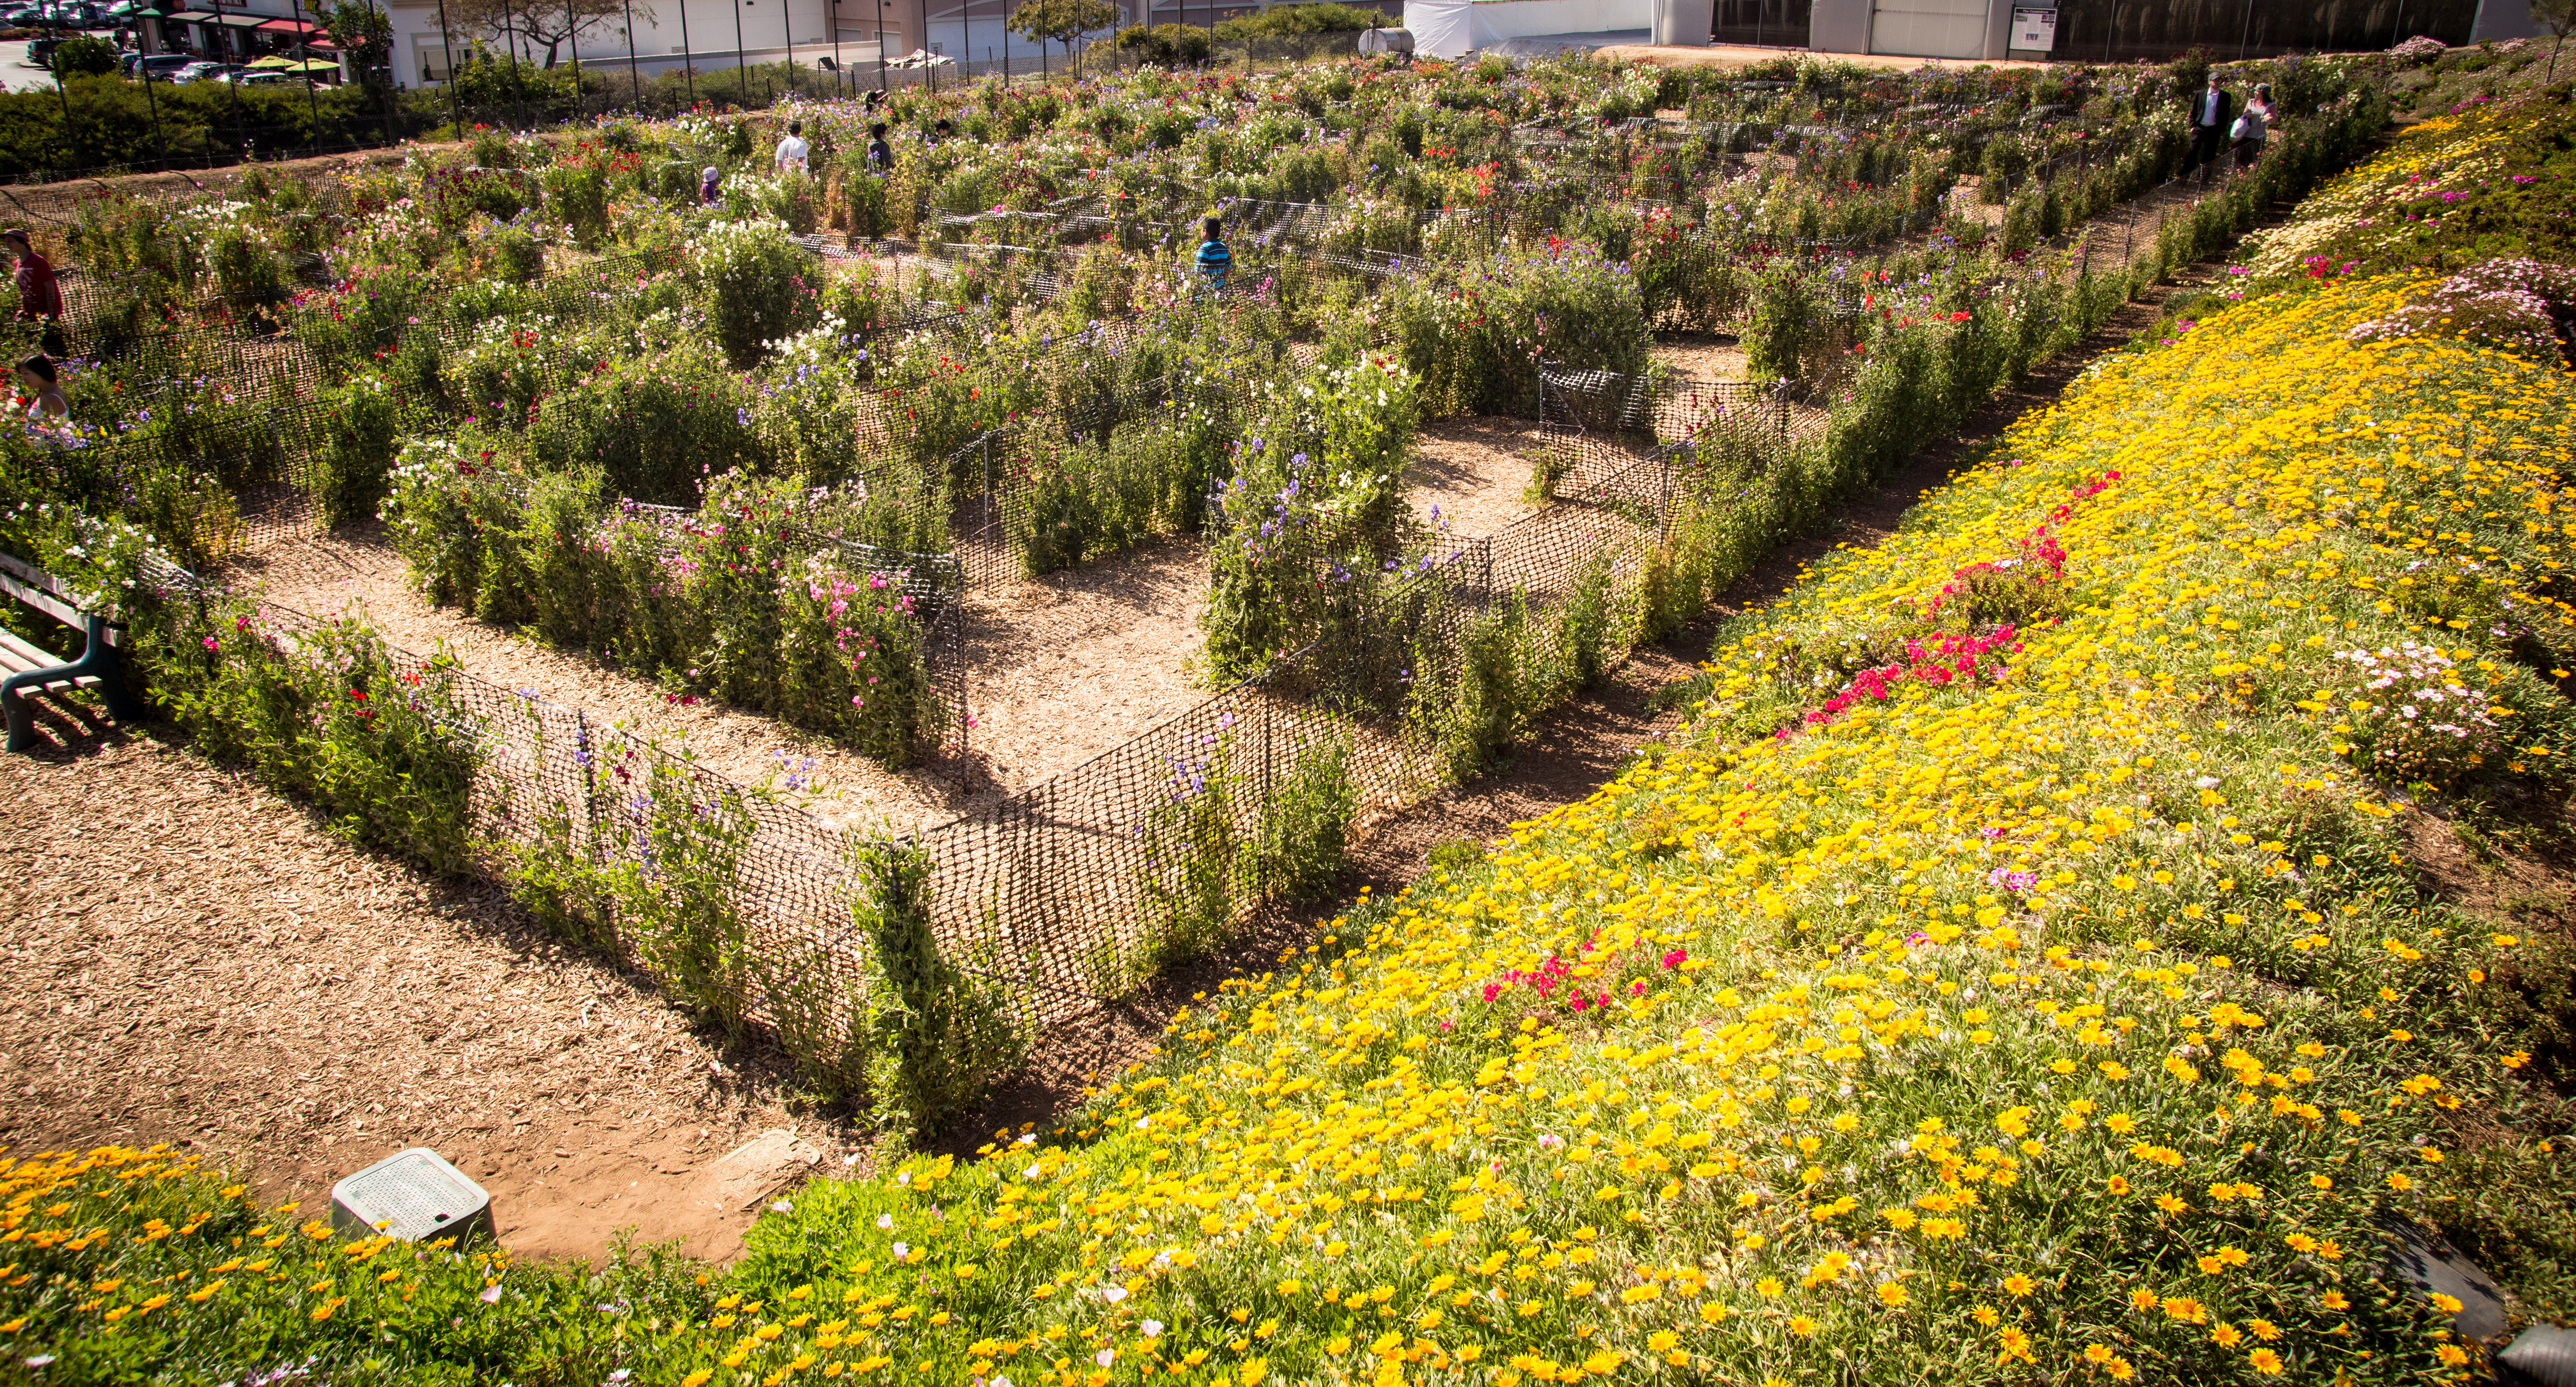 Children navigate the maze of sweet pea plants and flowers at Carlsbad flower fields.